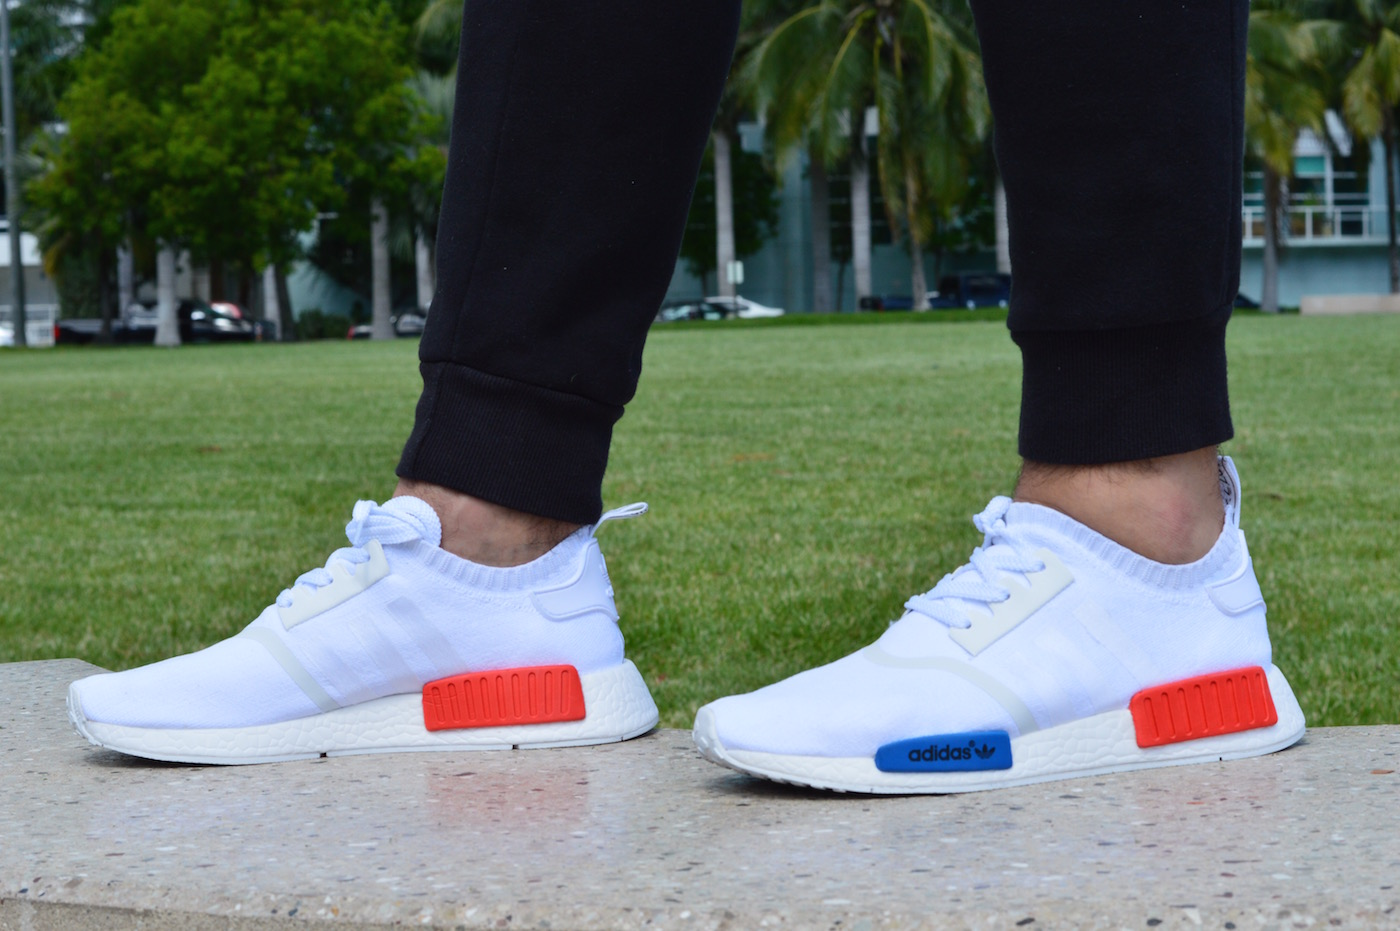 adidas NMD R1 Primeknit On Feet Inside View White Red Blue